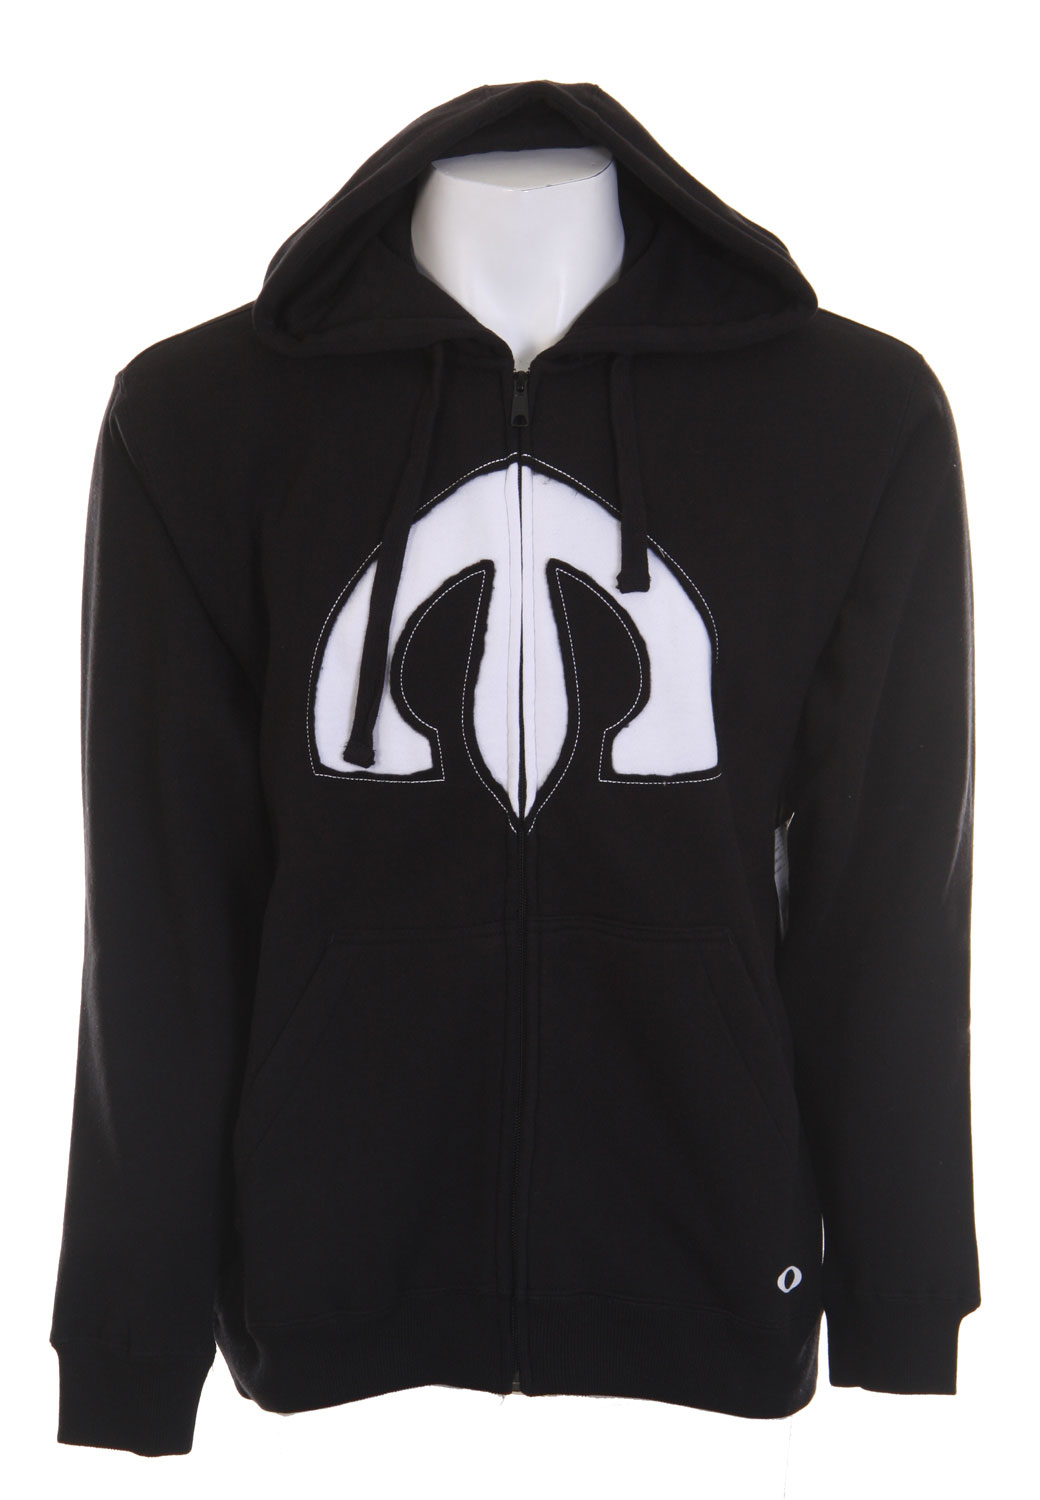 Full-zip hoodie with marsupial hand pocket, front applique and back screen print.Key Features of The Oakley Toac Sword Men's Hoodie: 80% Cotton and 20% Polyester Fit: Regular - $35.95